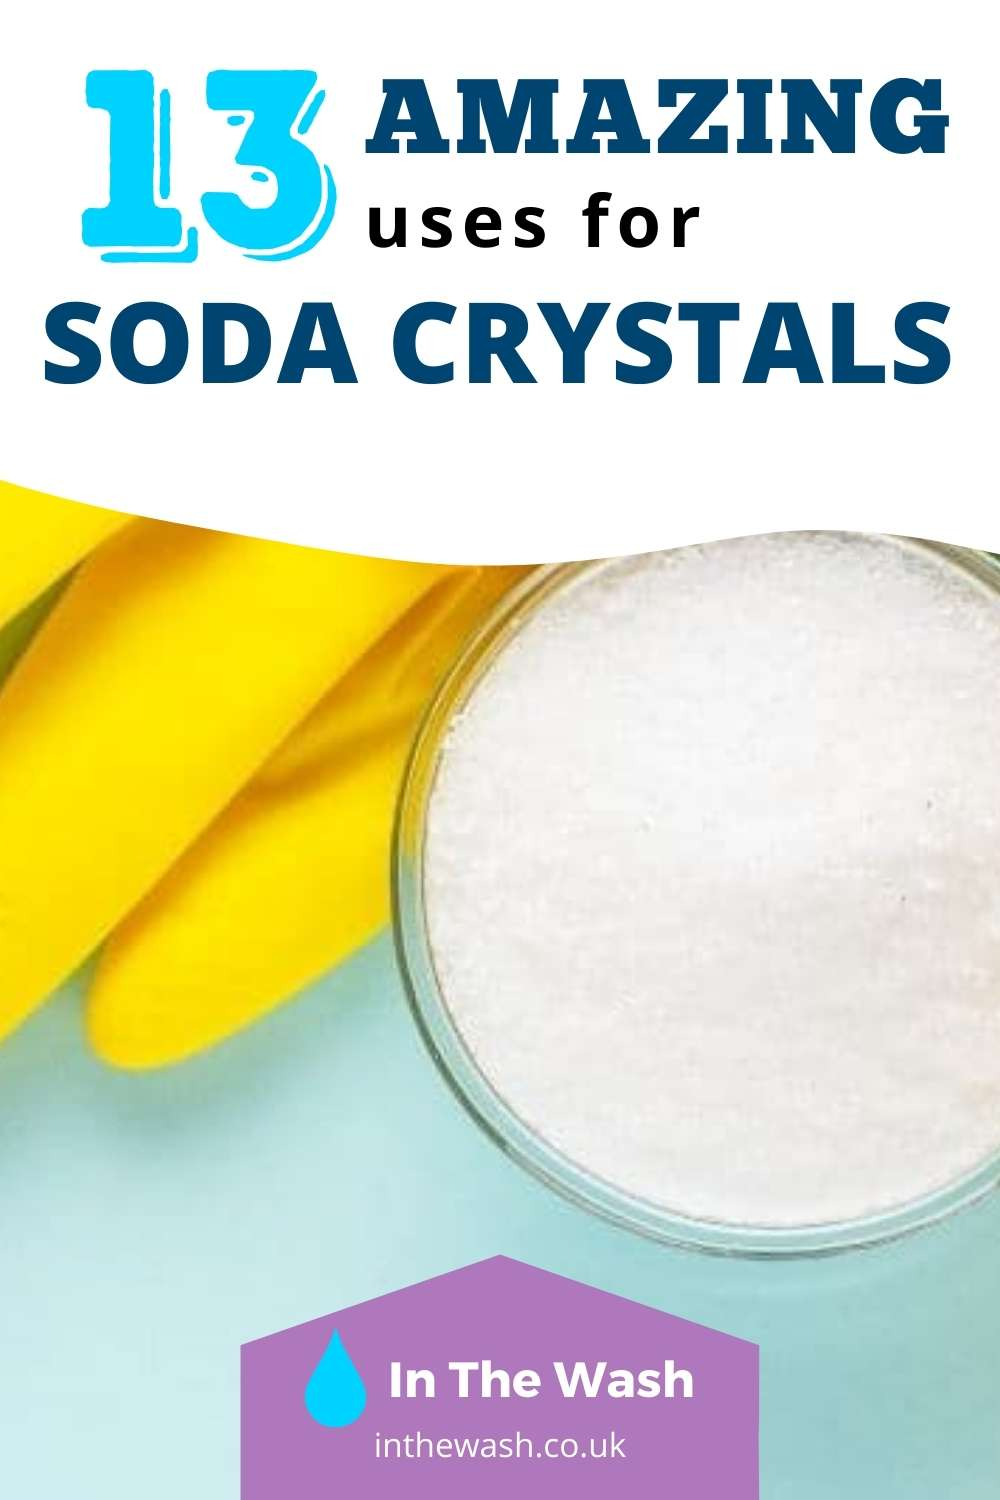 13 Amazing Uses for Soda Crystals Pinterest Pin